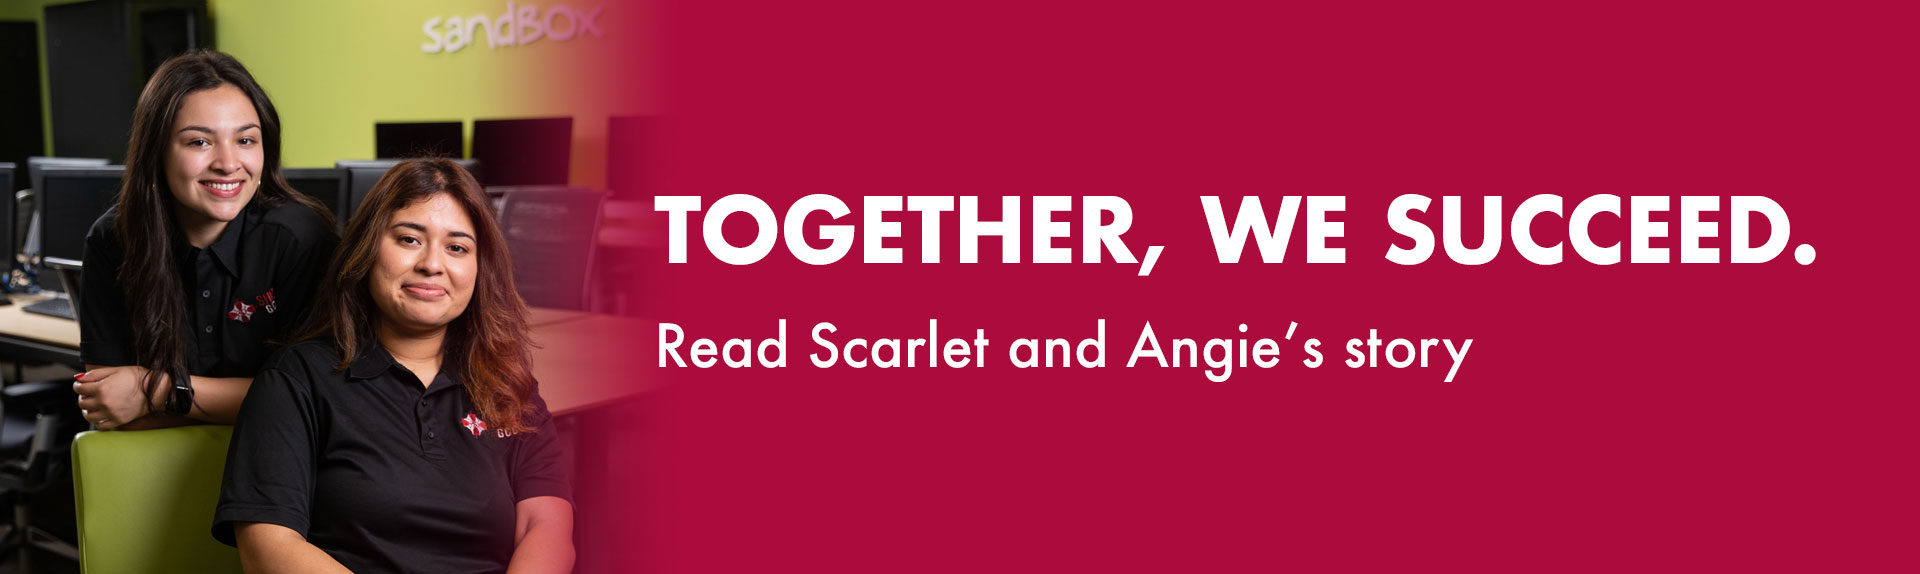 Together, we succeed. Read Scarlet and Angie's story.